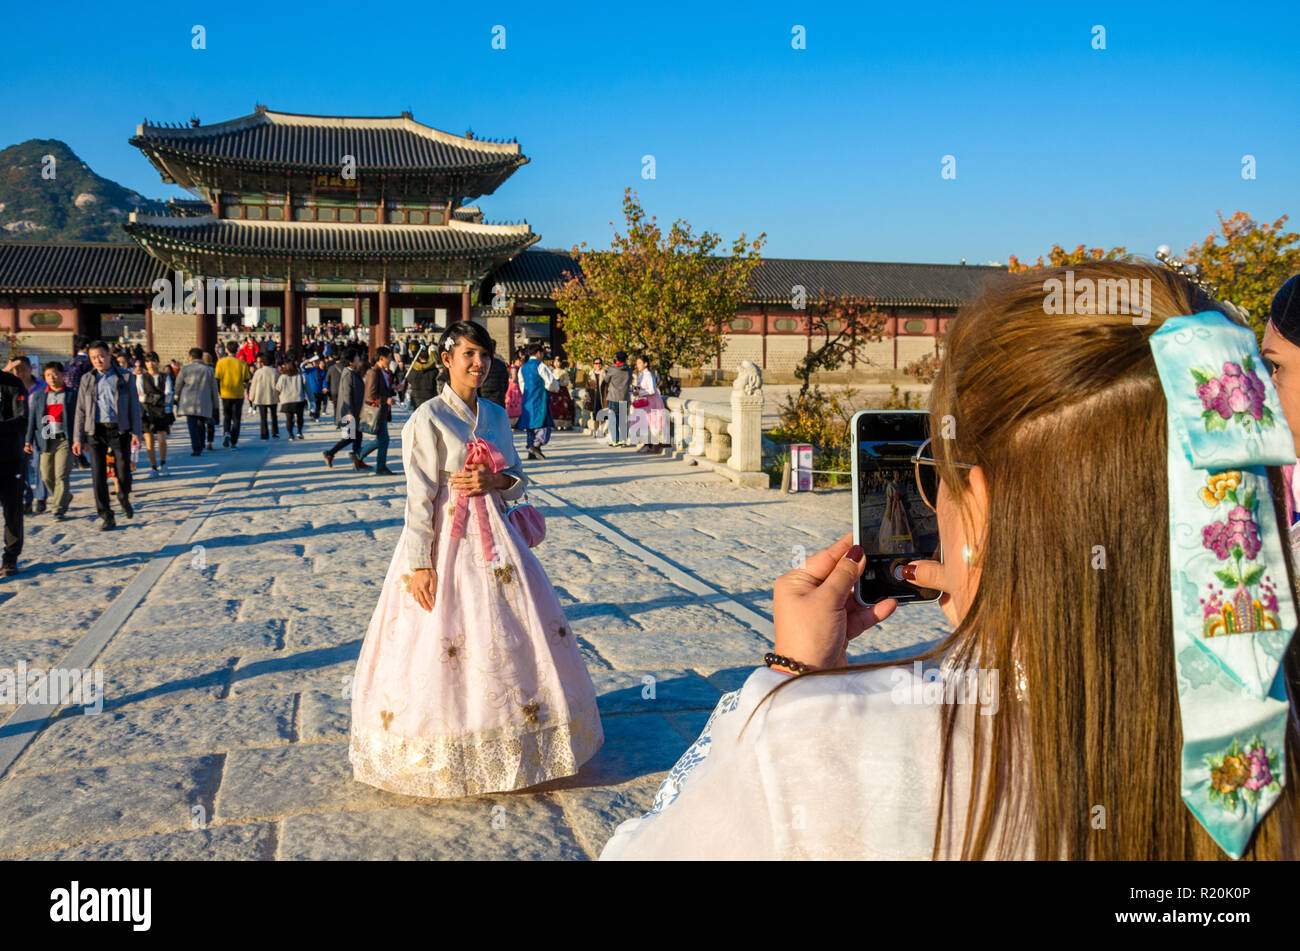 friends-wearing-traditional-korean-dress-the-hanbok-take-photos-in-front-of-the-gyeongbokgung-palace-in-seoul-south-korea-R20K0P.jpg